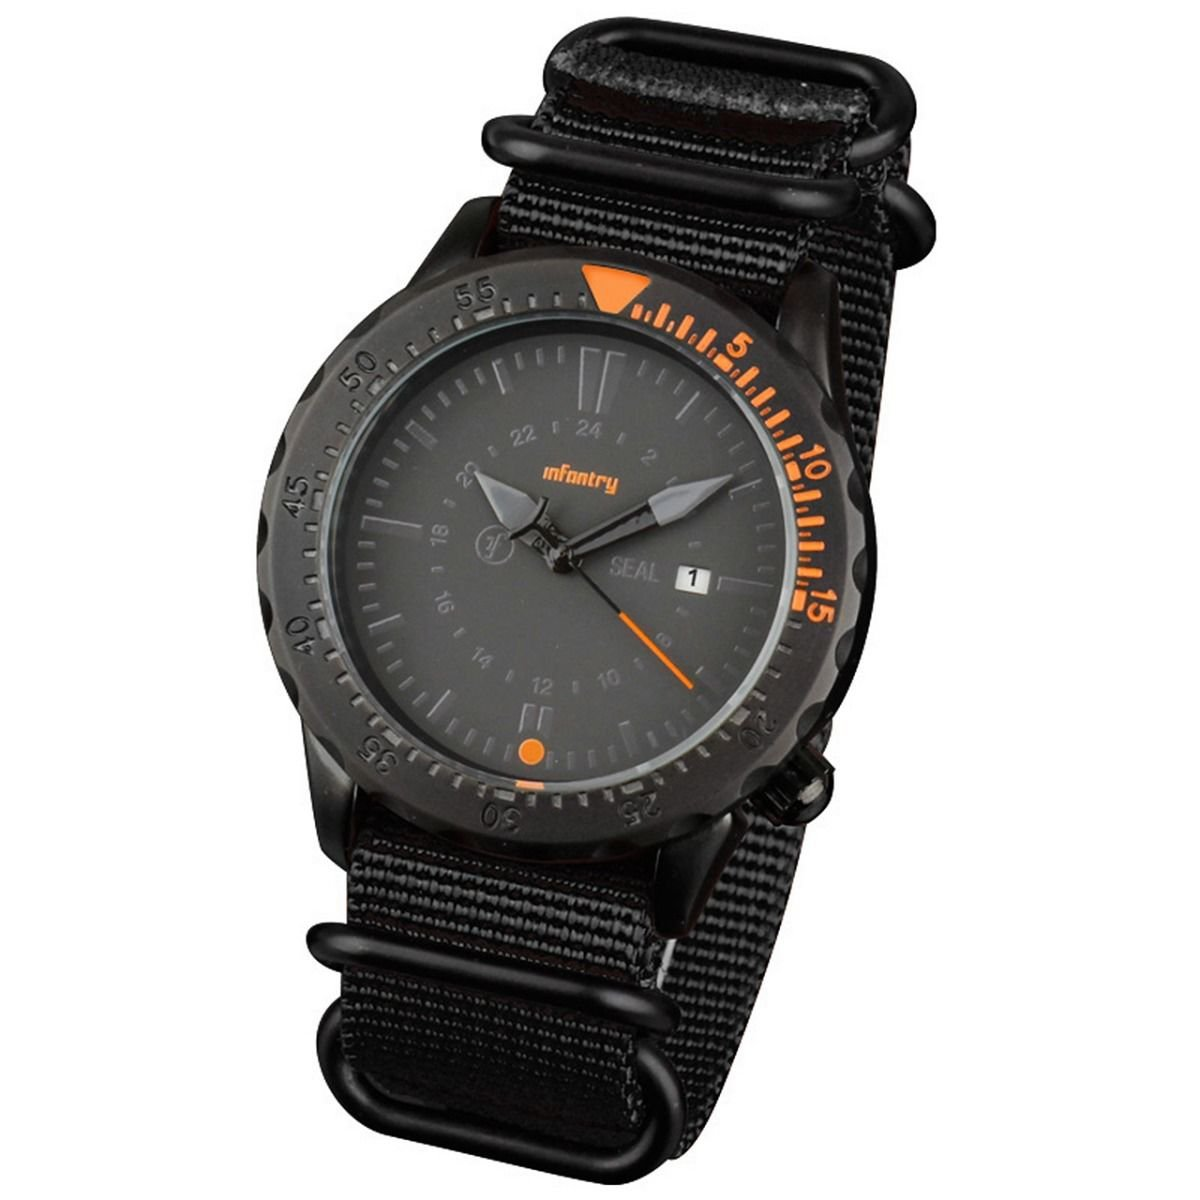 Black Band and Orange Infantry Mens Sport Quartz Watch Tachymeter Bezel Nylon